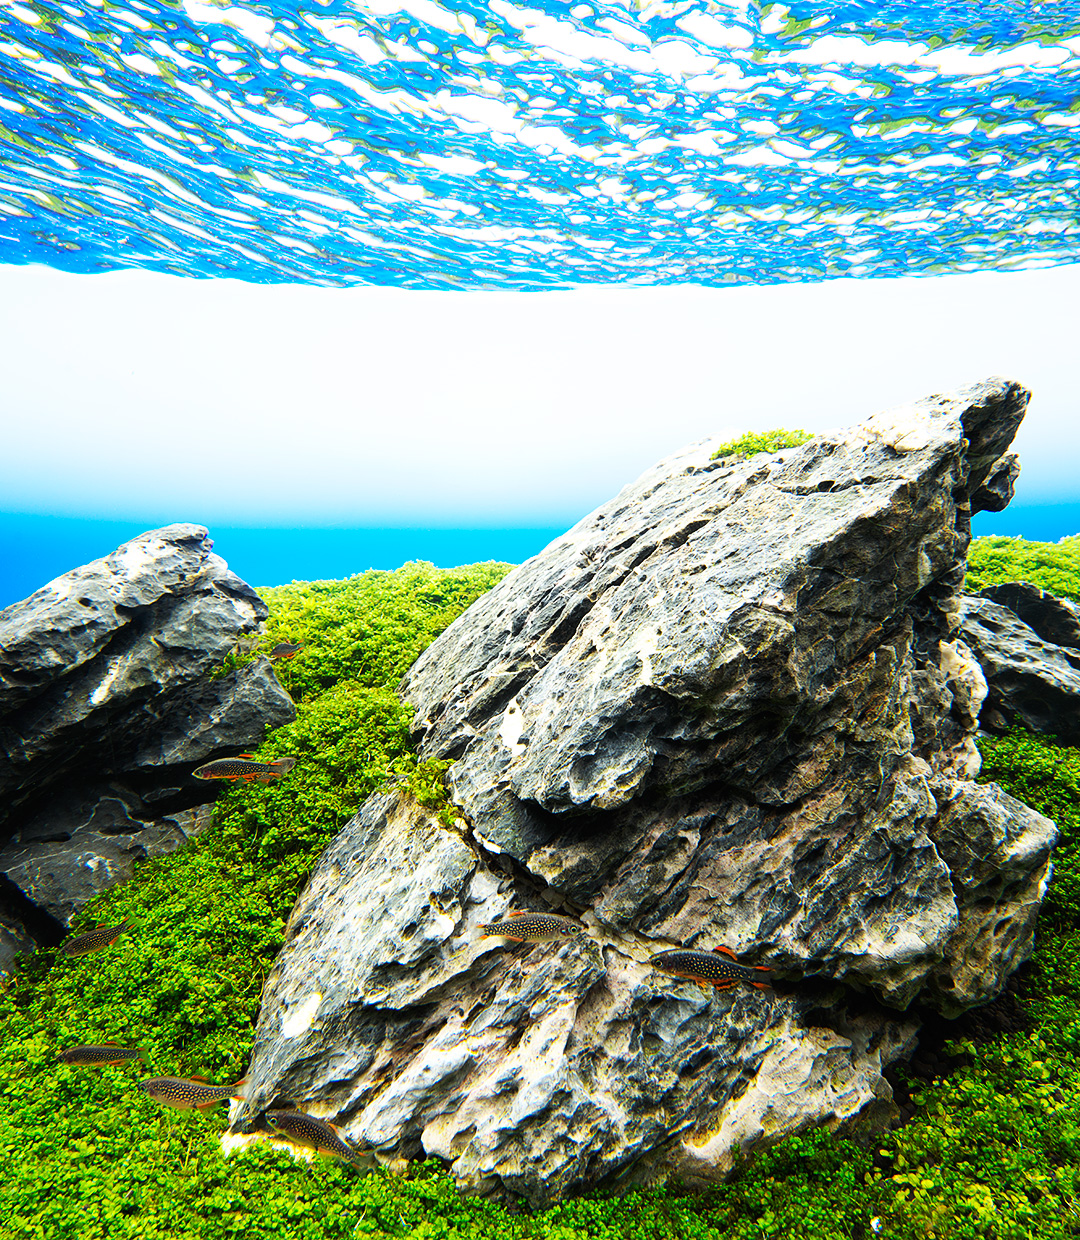 NATURE IN THE GLASS 'A simple Iwagumi aquascape with a powerful impression'